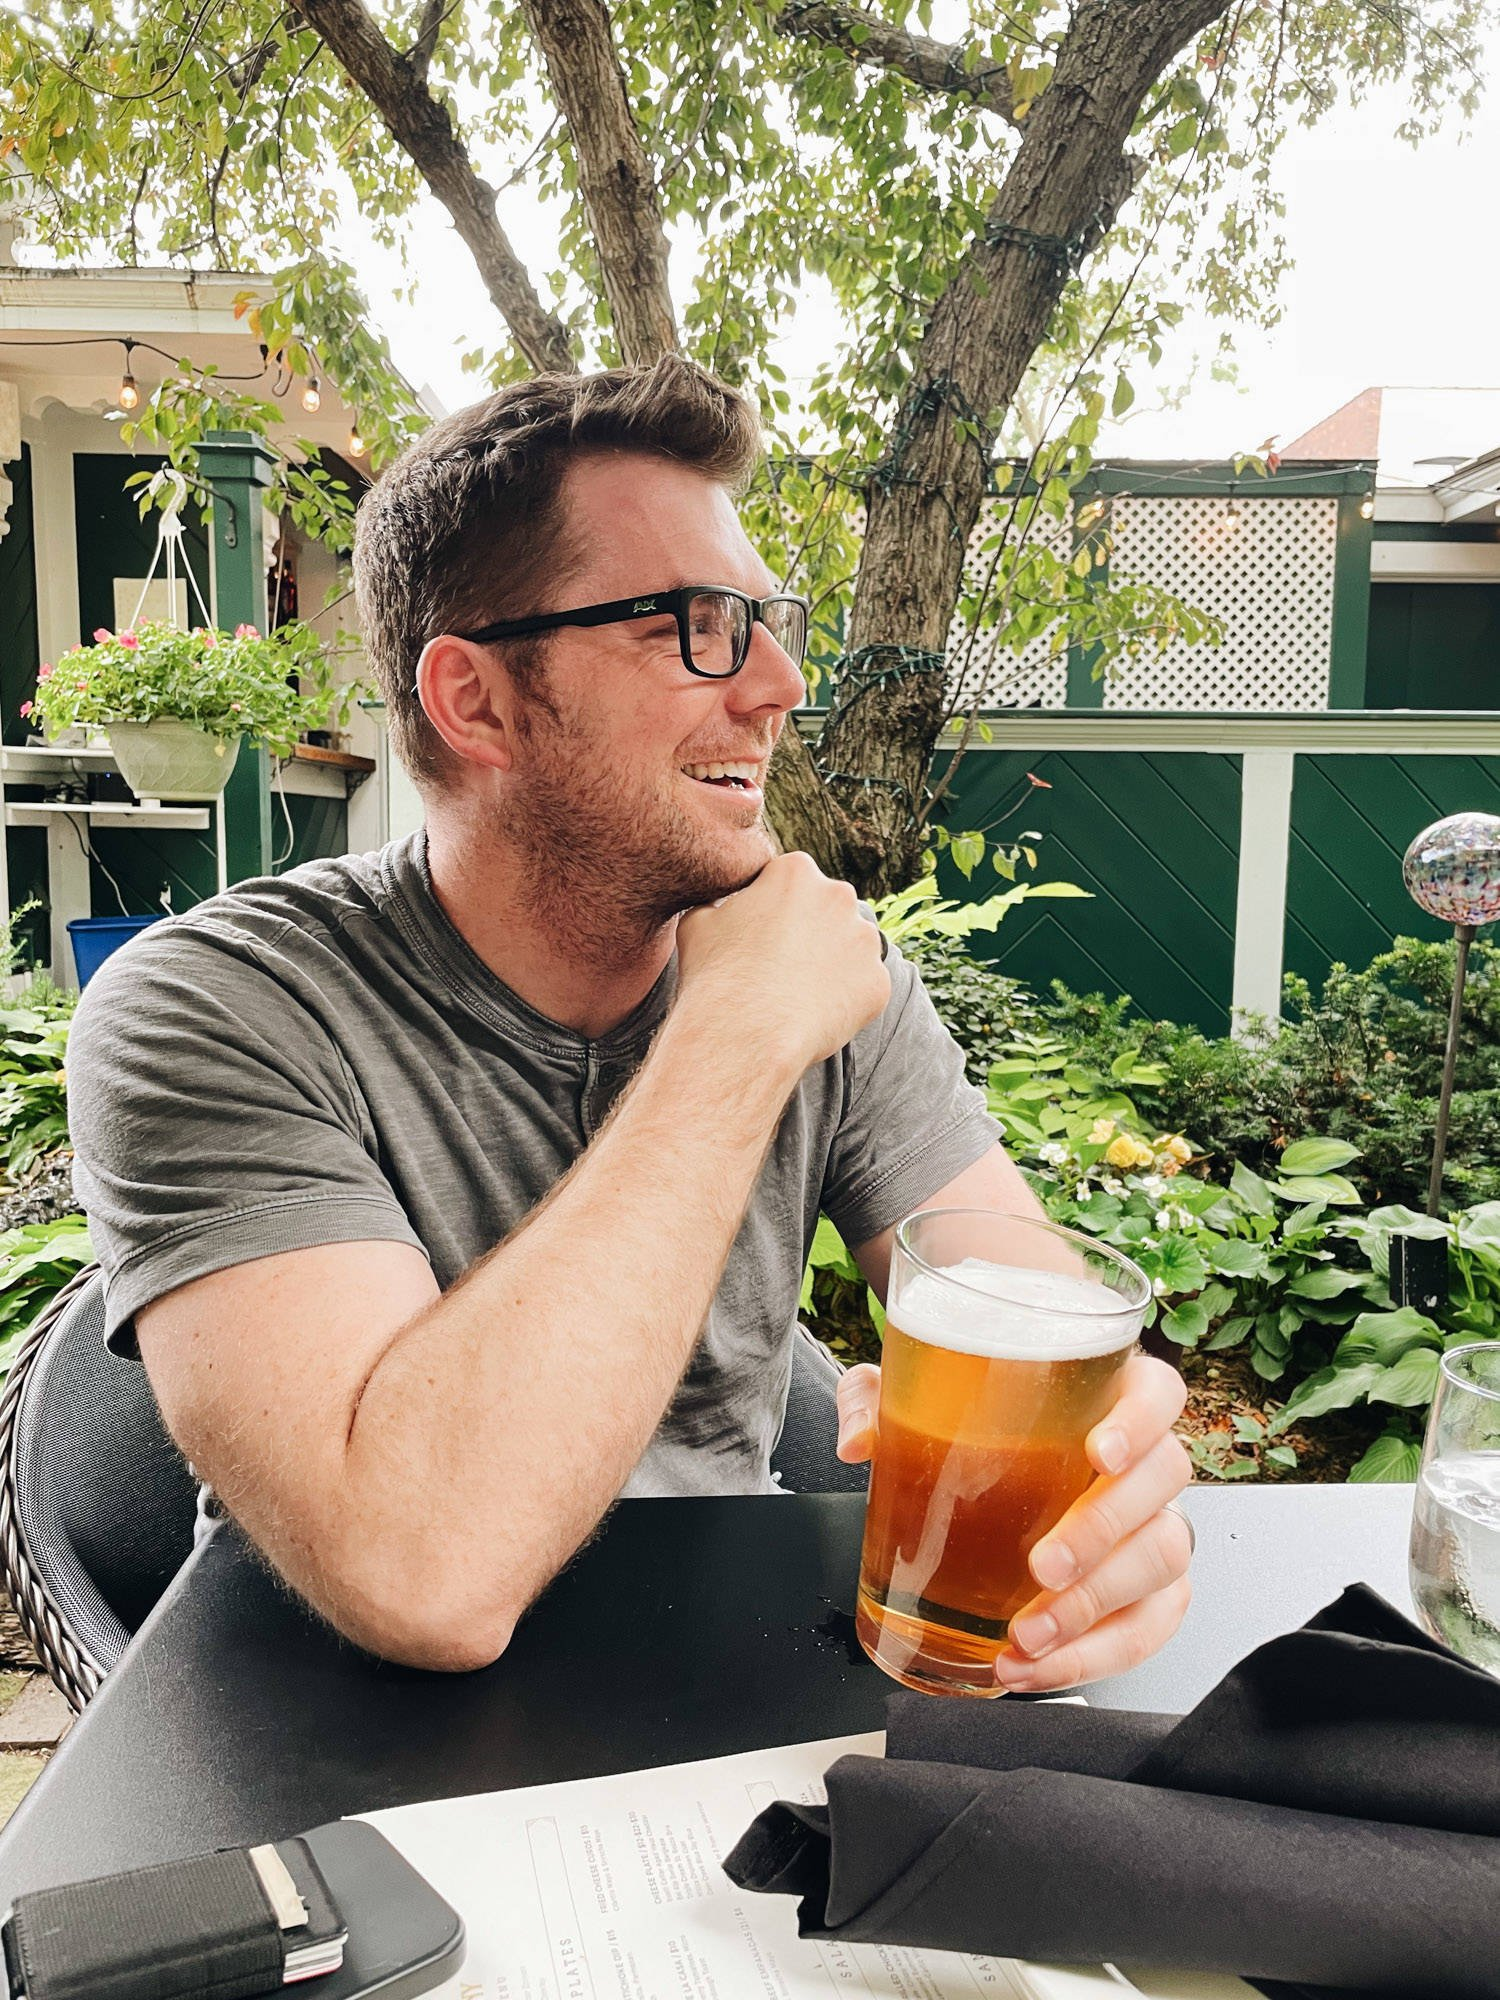 Man holding a beer and smiling.